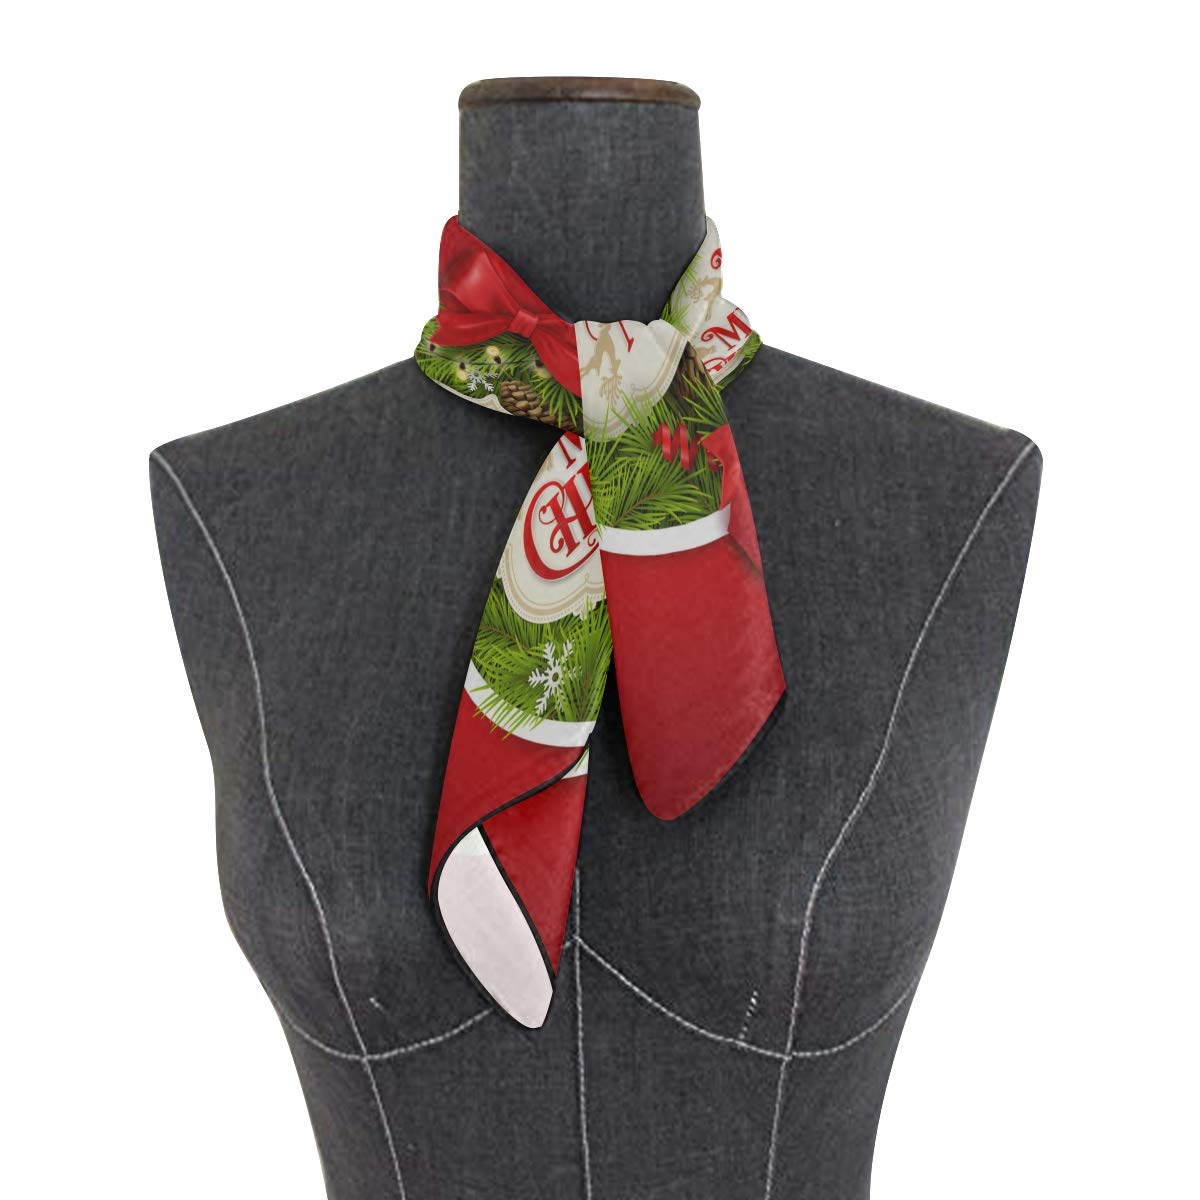 Soft Polyester Silk Large Square Scarf Fashion Print Green Christmas Tree Ring Head Scarf Women Thin Neckerchief Scarfs Women Multiple Ways Of Wearing Daily Decor